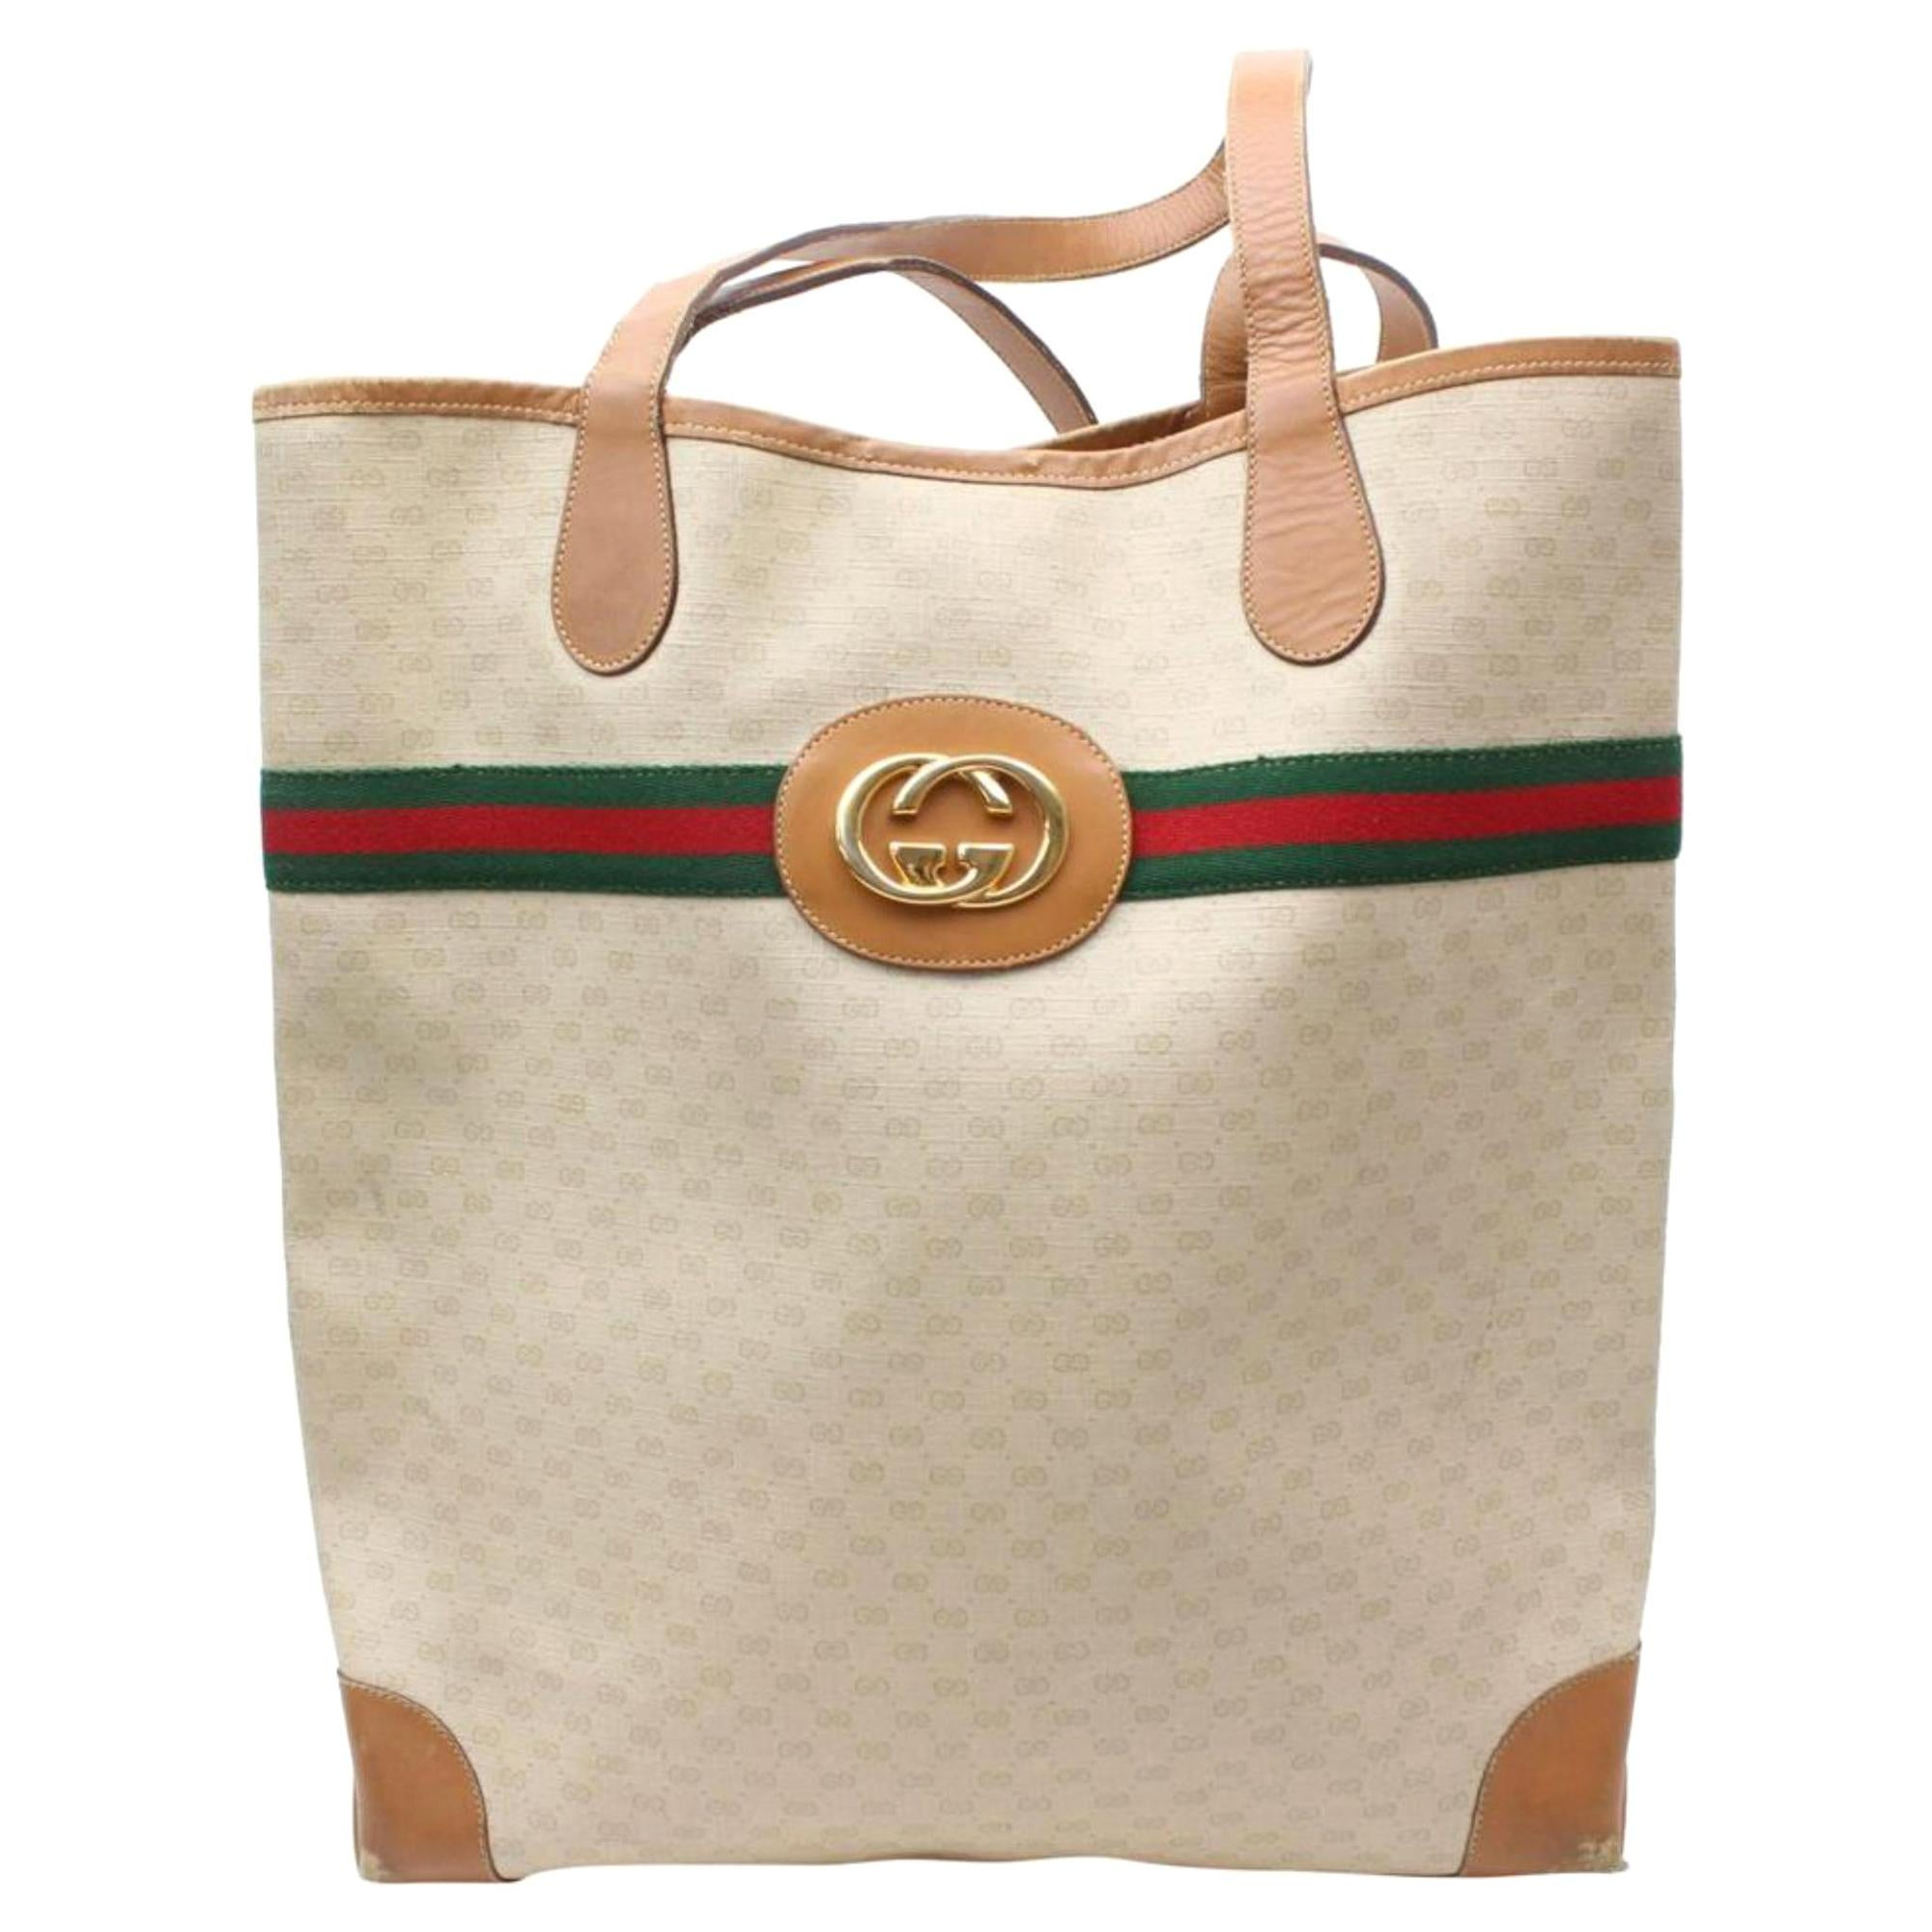 3e4b04133ce Gucci Large Tote Bags - 62 For Sale on 1stdibs